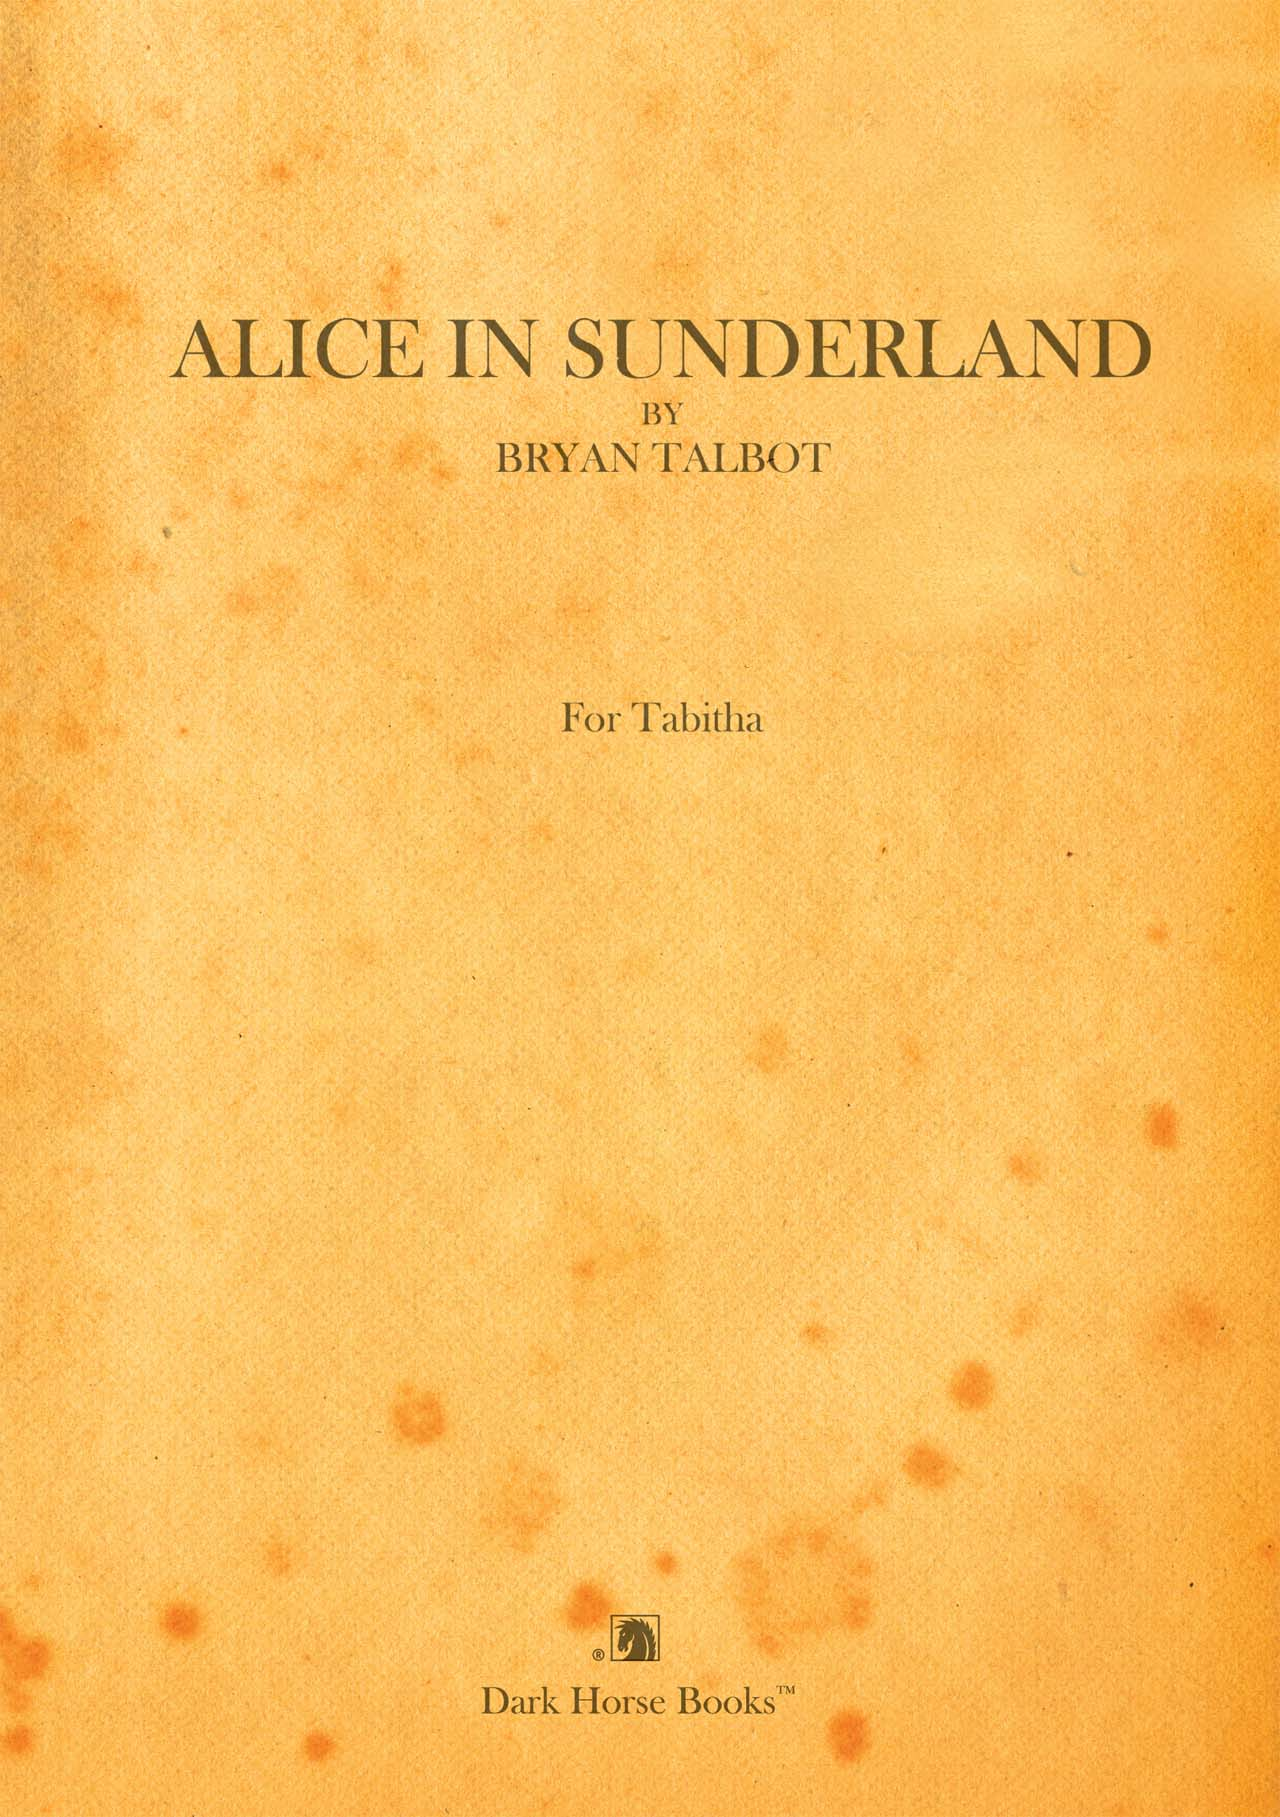 Read online Alice in Sunderland comic -  Issue # Full - 2